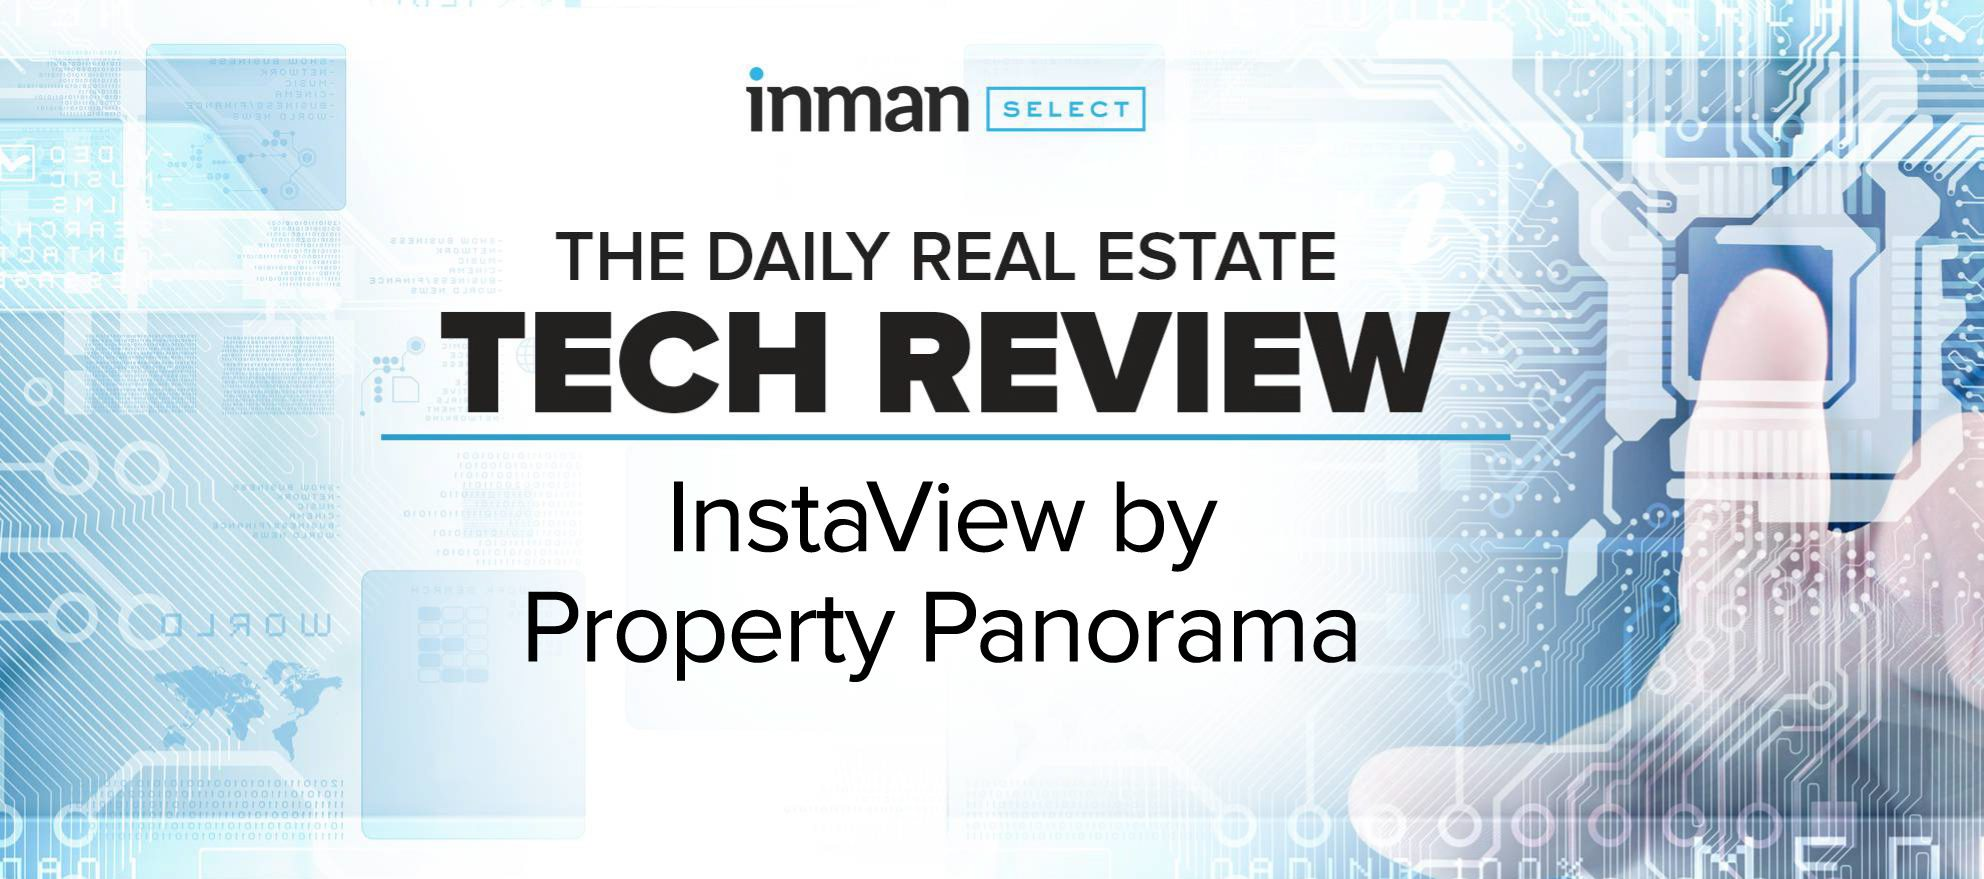 Property Panorama's InstaView automates property marketing